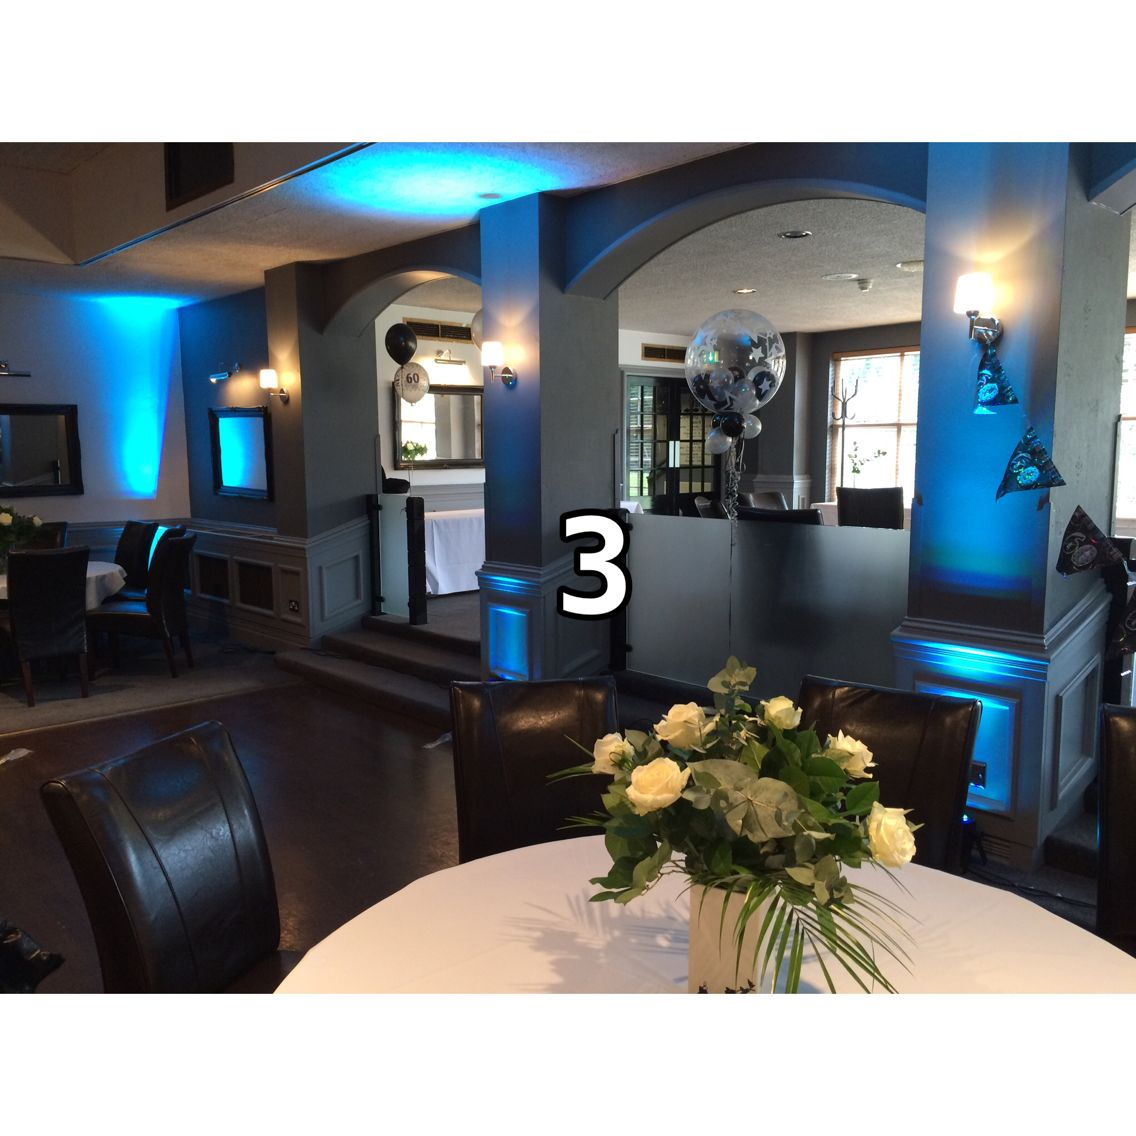 licensed wedding venues in north london%0A Great venue for weddings and parties